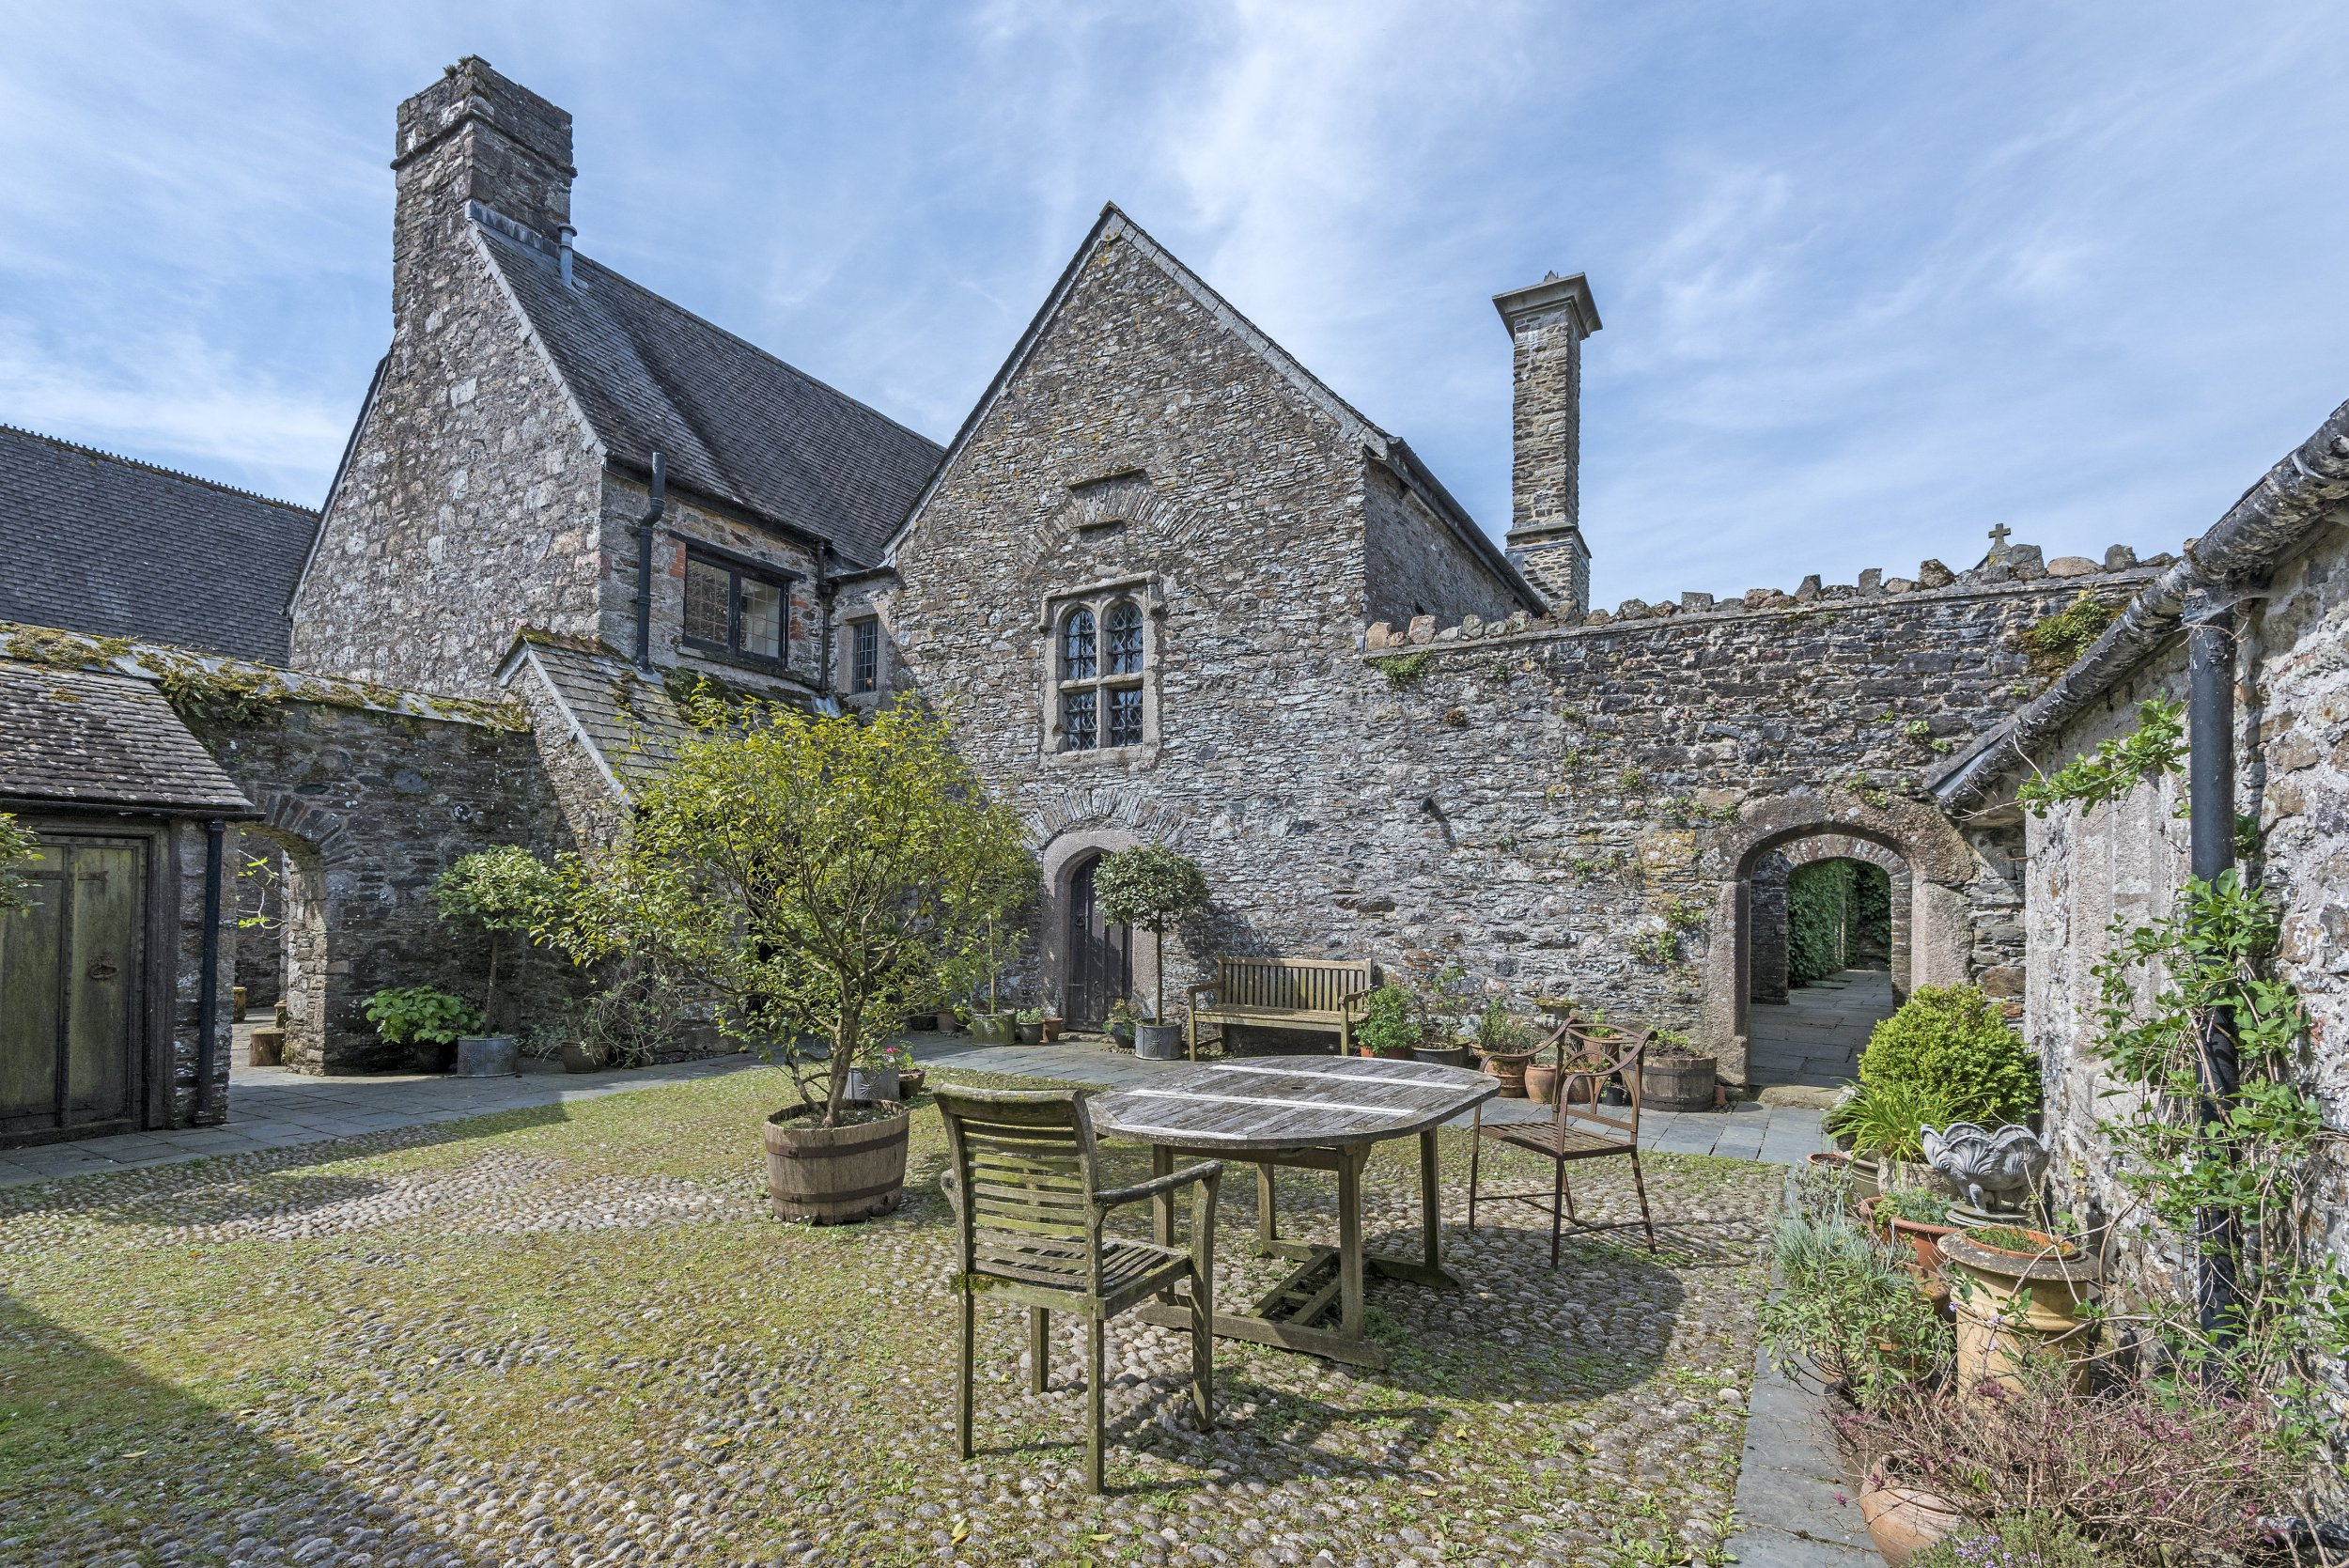 A historically-significant manor house which was once the home of Sir Walter Raleighs family has been put up for sale for ??2 million. Fardel Manor, which was recorded in the Domesday survey of 1086, has its own lake, swimming pool and CHAPEL. It is currently home to Father Benedict Ramsden, an Archpriest in the Russian Orthodox Church, who founded and runs an organisation called the Community of St Anthony and St Elias, and his wife, Lilah. But back in the early 17th Century, it belonged to Sir Walter Raleighs father - and the famous explorer and politician regularly visited the house, as did one of his ships captains, John Rolfe, who was the husband of the famous Pocahontas. Sir Walter regularly visited the house and continued to do so even in death. His grieving wife, Lady Elizabeth Raleigh, couldnt stand to be apart from her late husband and after he was executed in 1618 she would take his head everywhere she went - including Fardel Manor. The Grade I Listed home, which sits on the edge of Dartmoor in South Devon, now consists of four bedrooms, a drawing room, library/dining room, study, a screens room, which was the former Mediaeval Hall, a 13th century chapel and a screens passage.